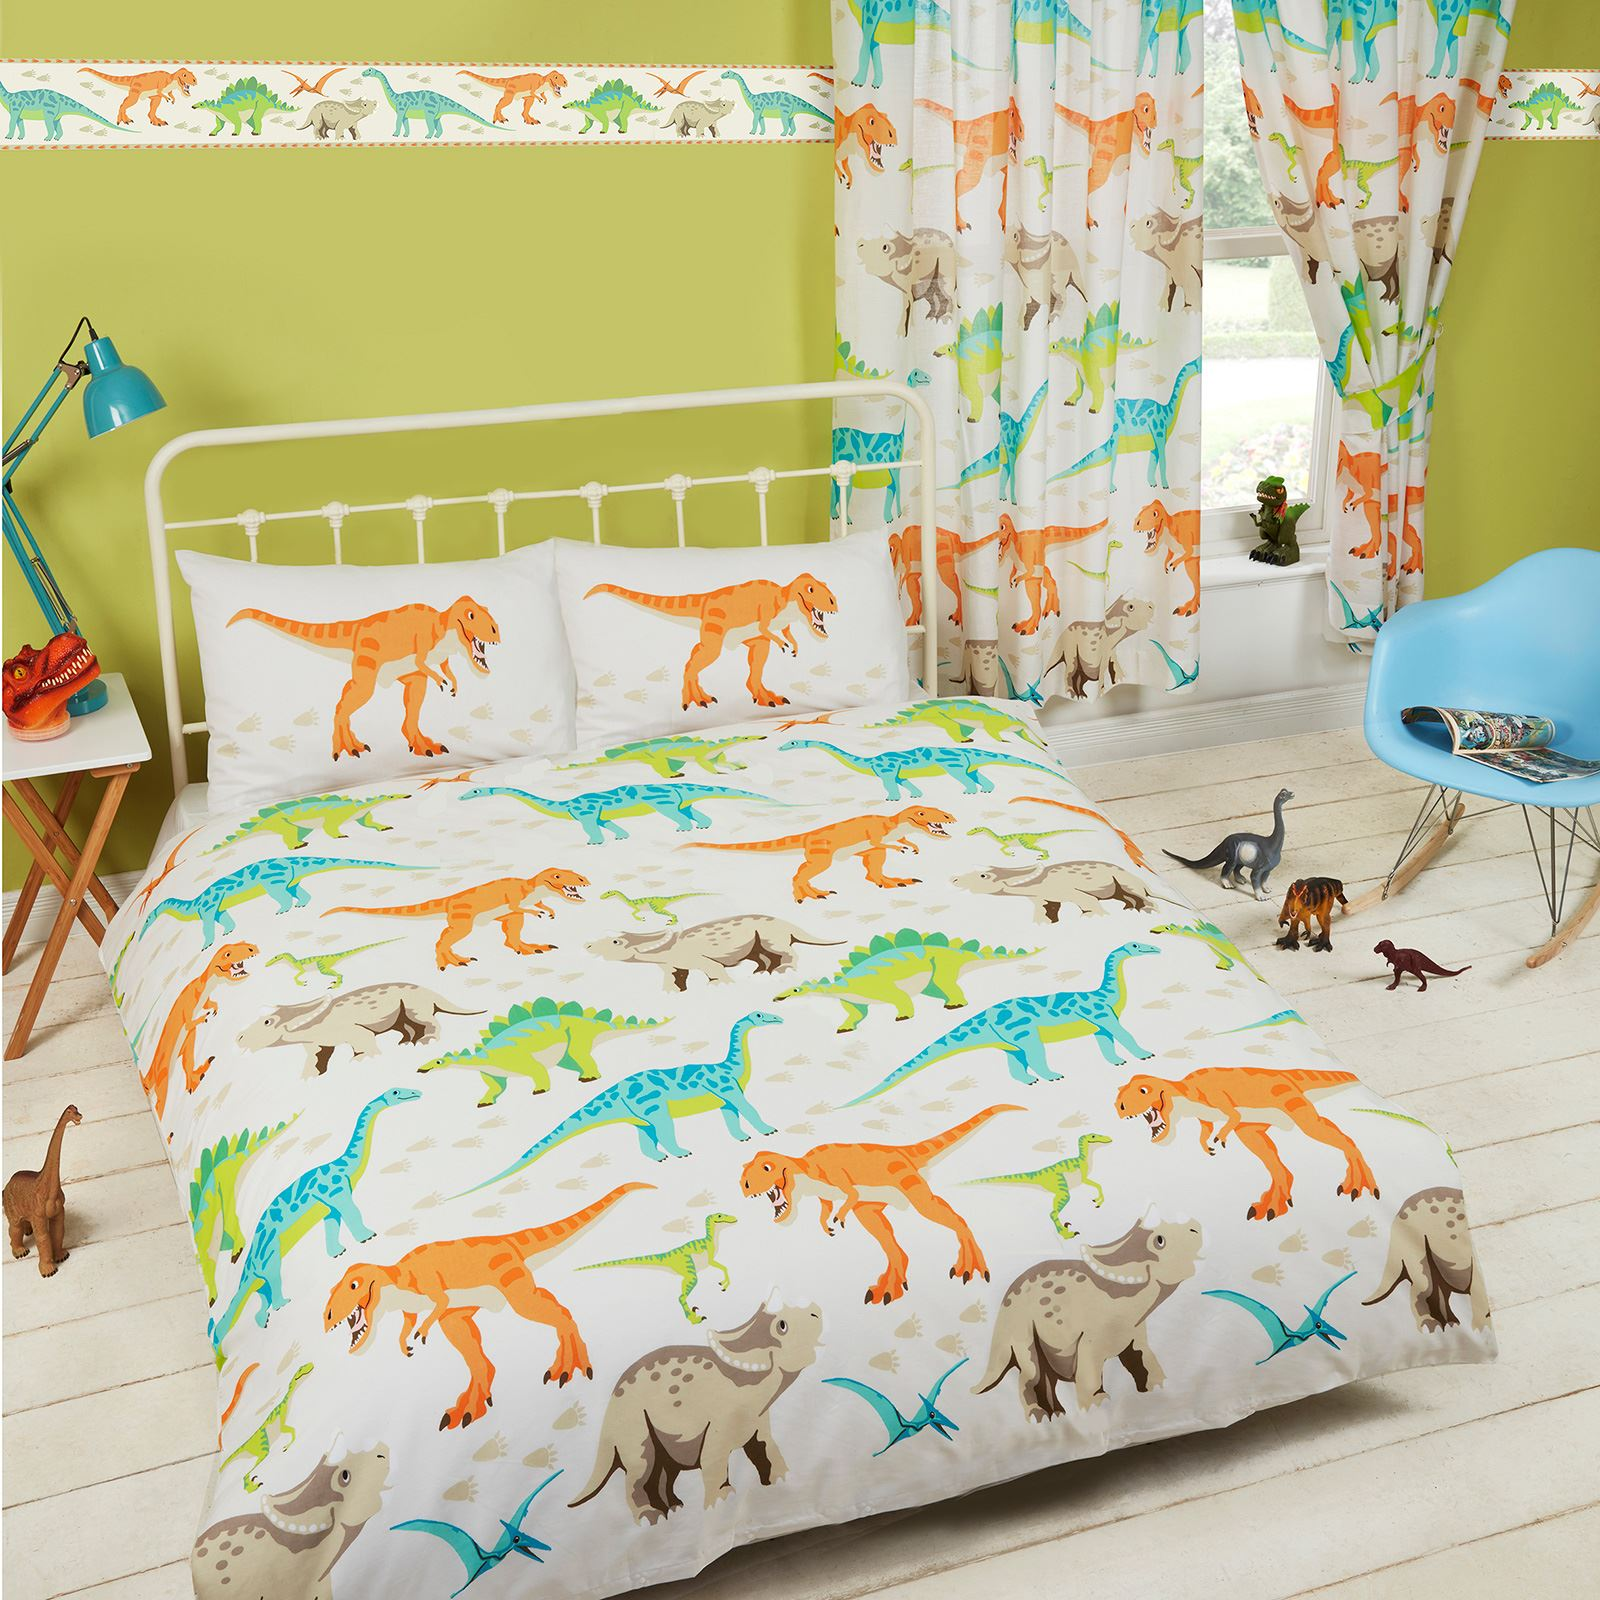 DINOSAUR WORLD KIDS MATCHING BEDDING SETS CURTAINS ...